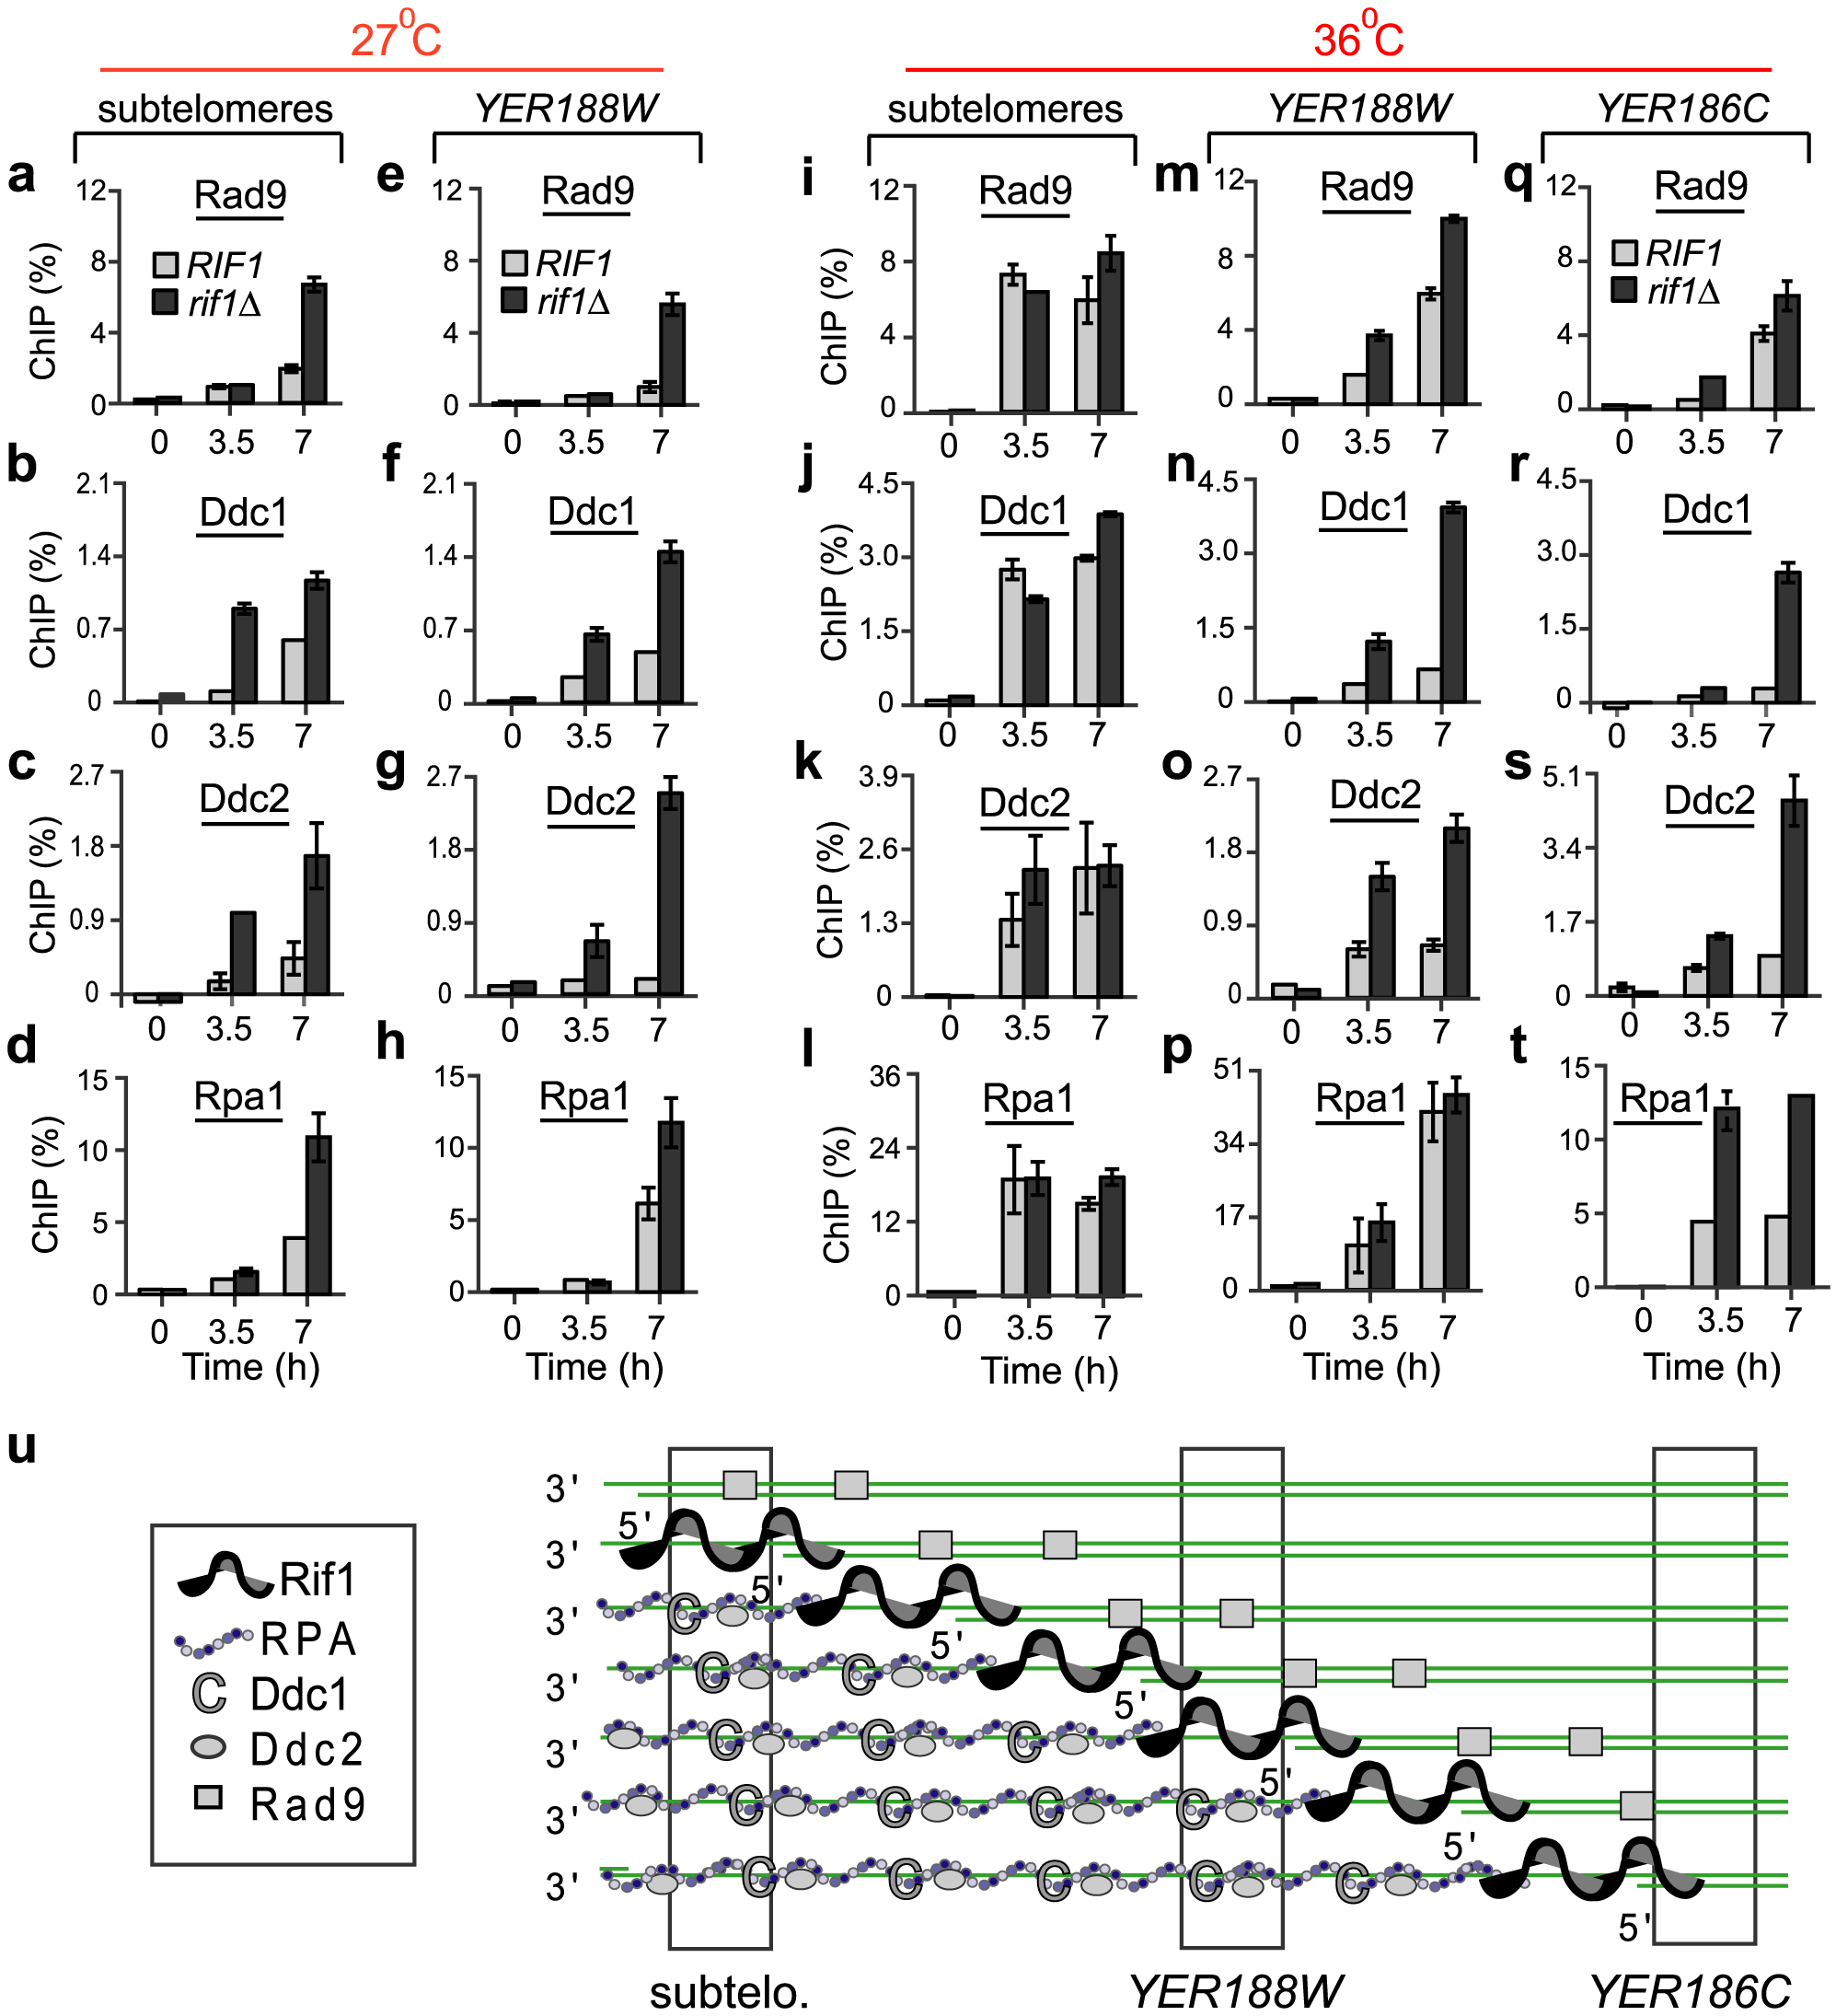 Rif1 inhibits the recruitment of checkpoint proteins and Rpa1 to sub-telomeres and single gene loci.